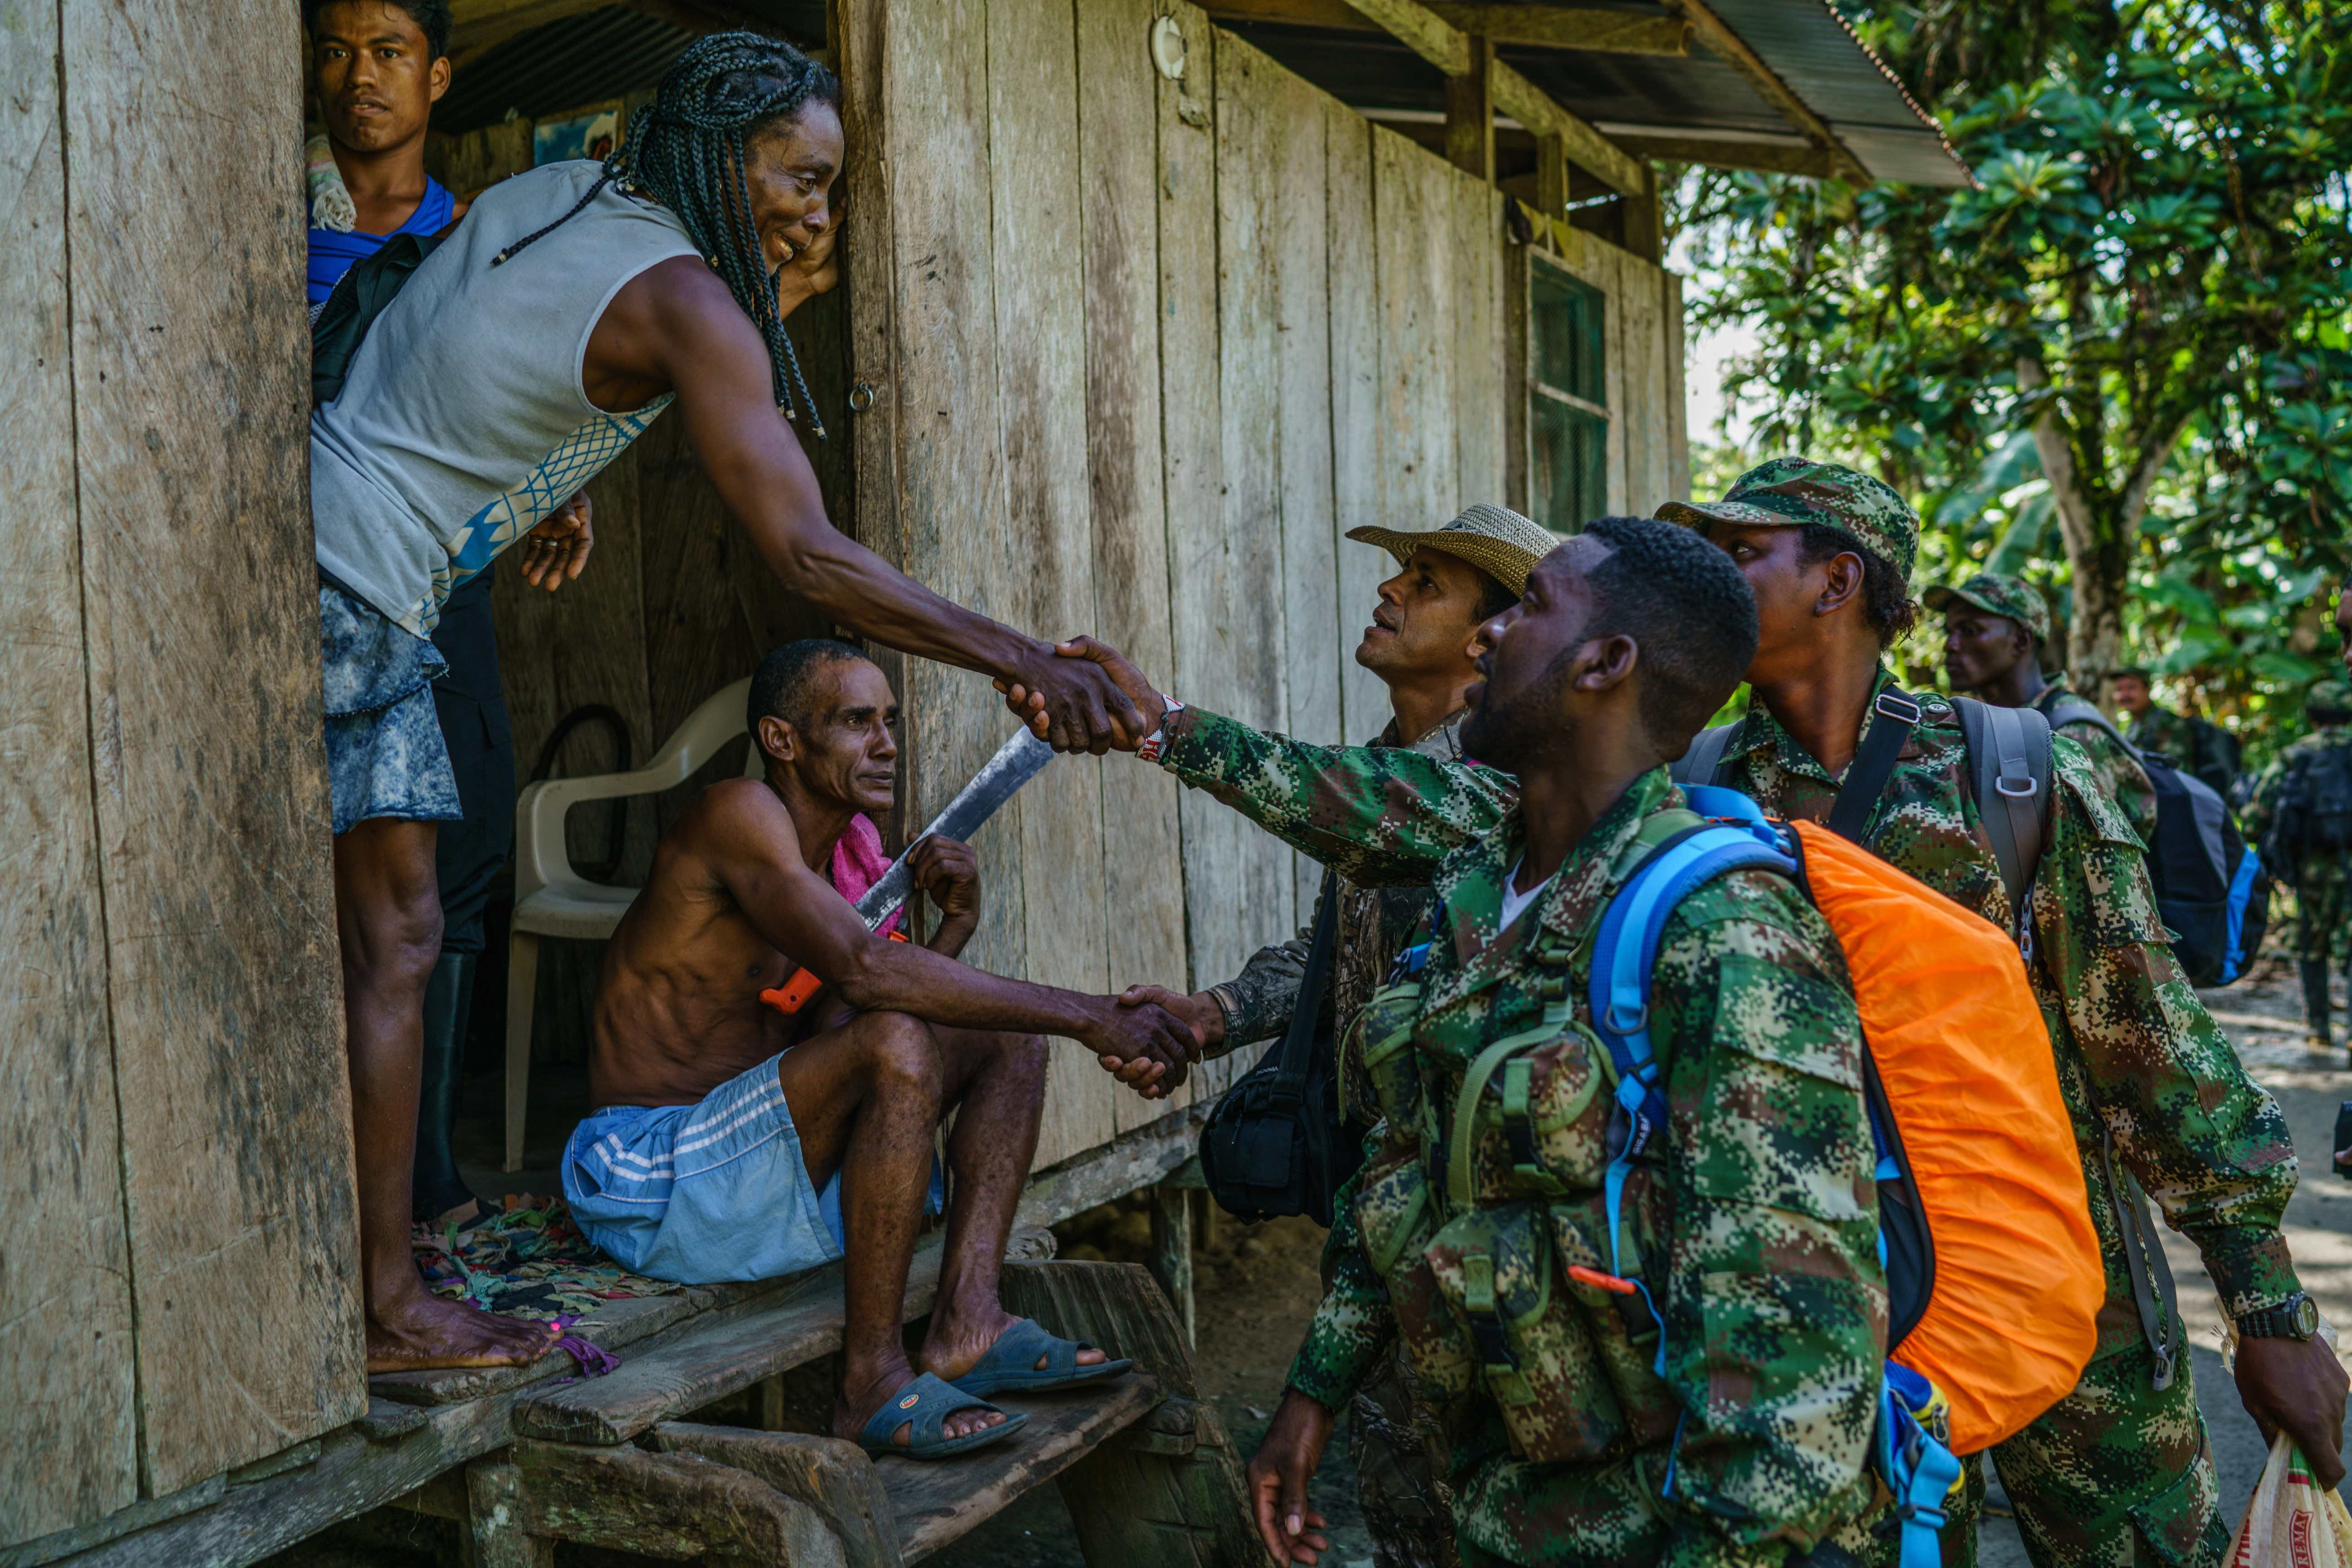 FARC members shake hands with villagers in rural Colombia. © Federico Rios